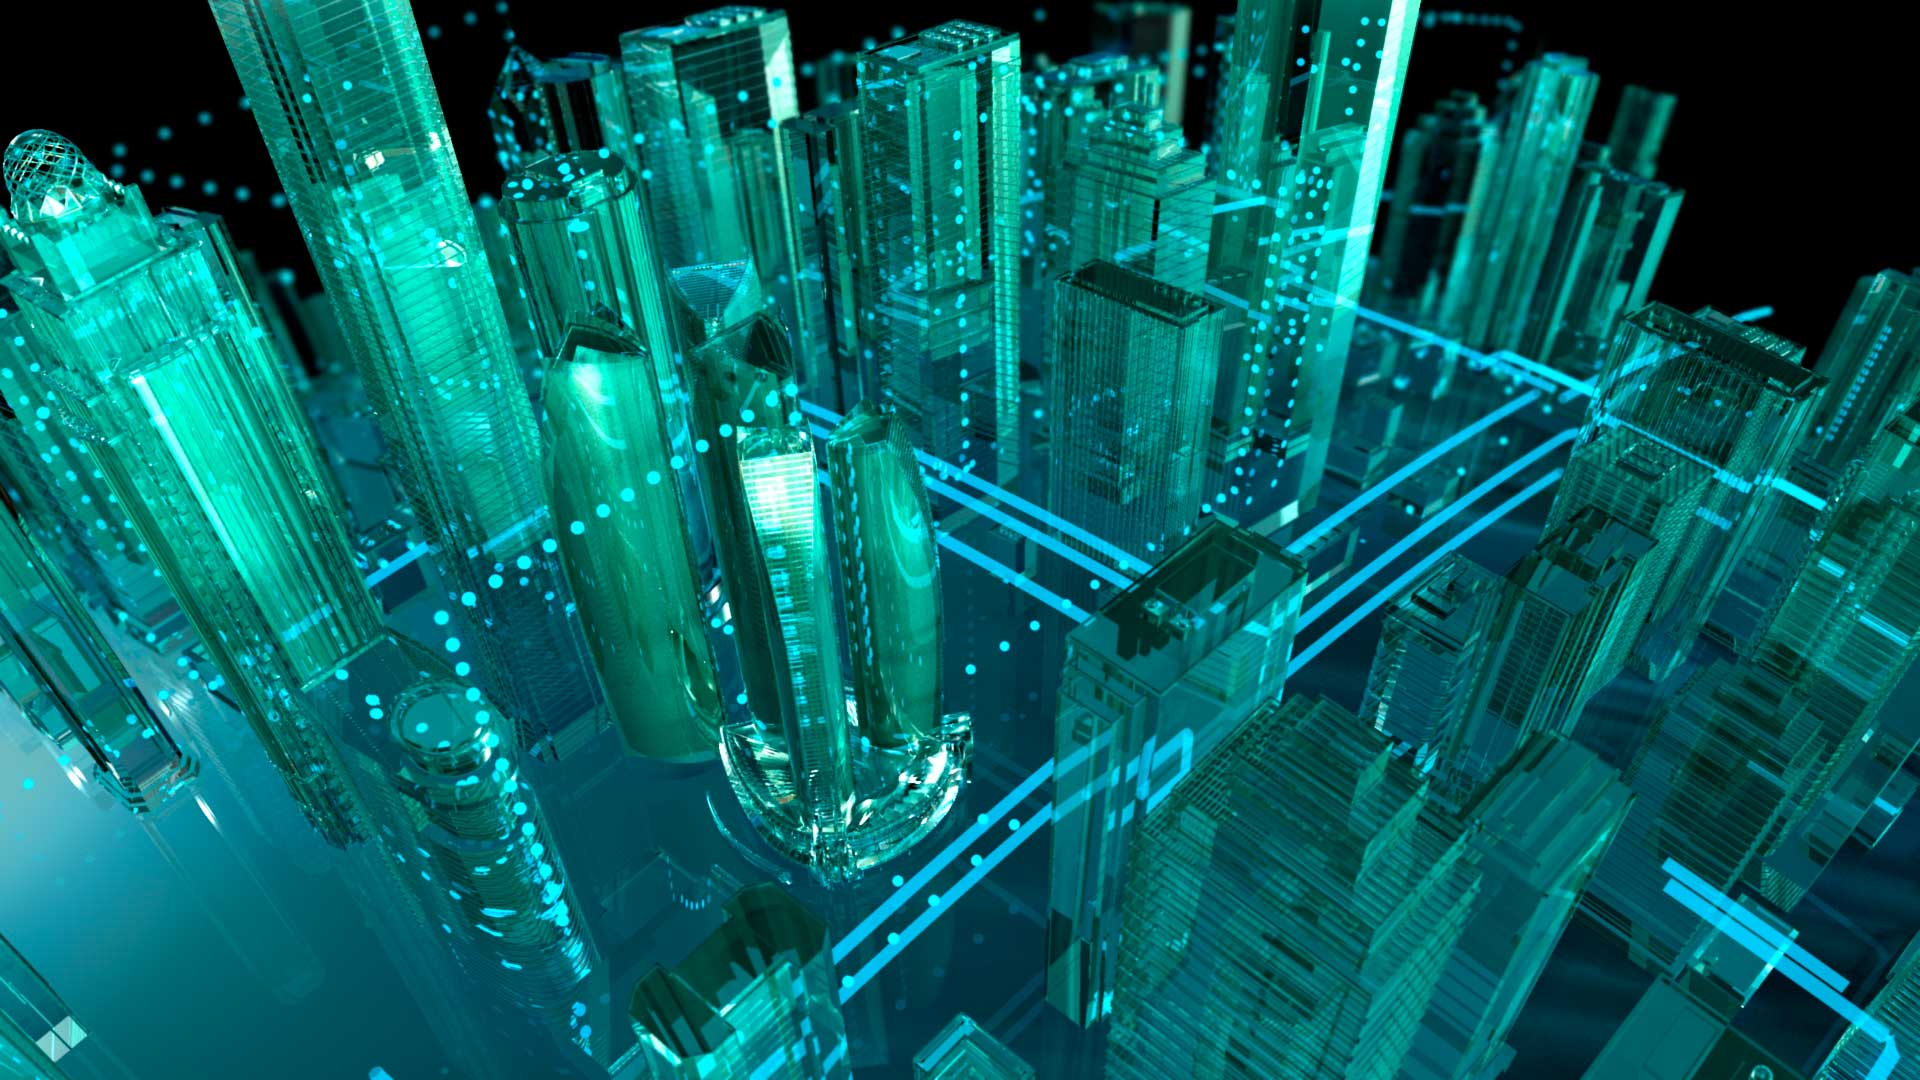 Cool Wallpapers For Desktop 3d Animated Video Cisco Security Neumatic